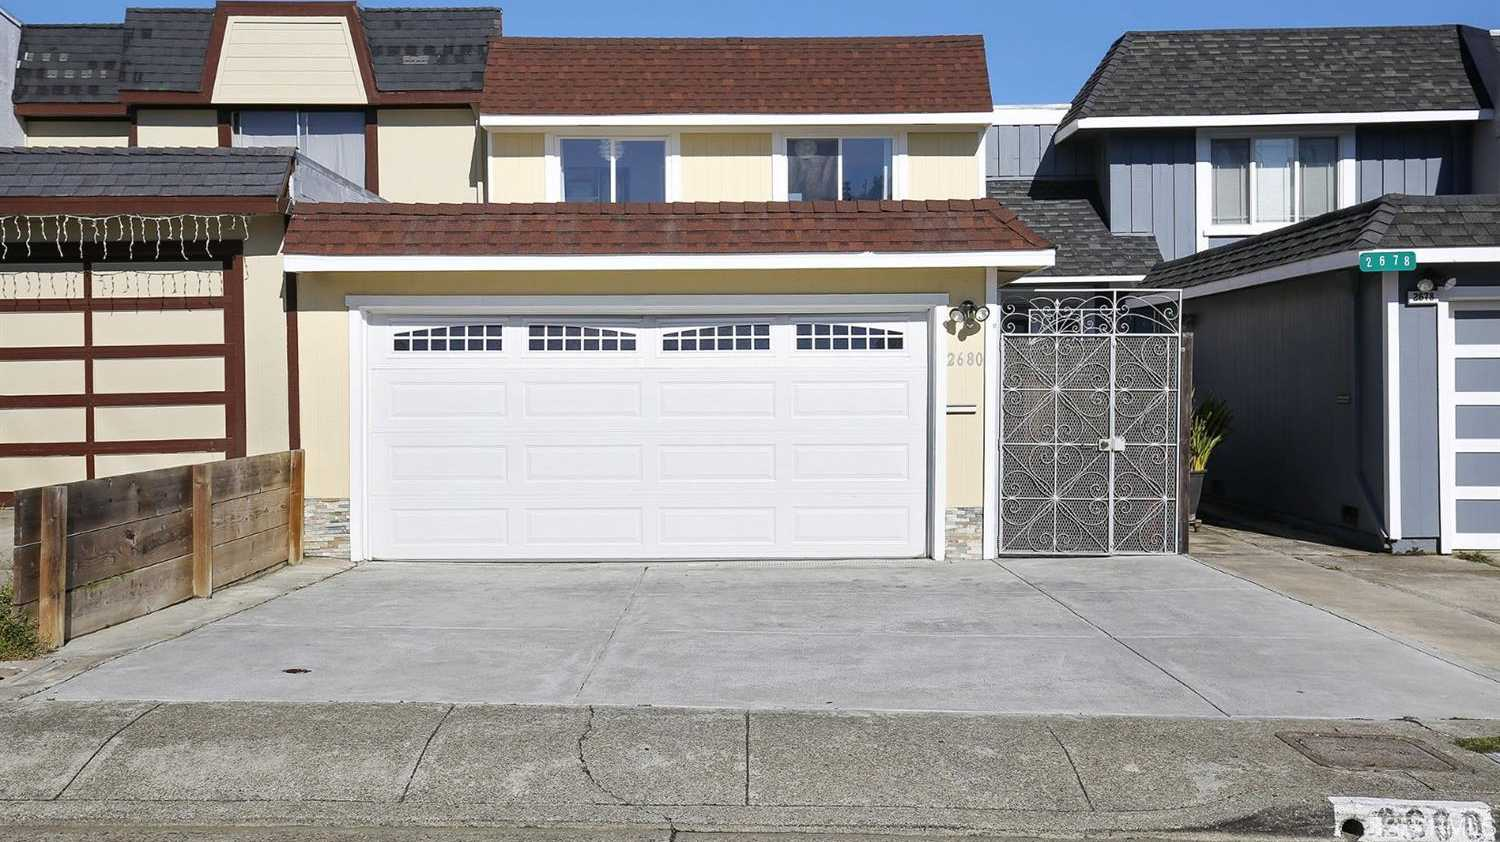 2680 Cromwell Row South San Francisco, CA 94080